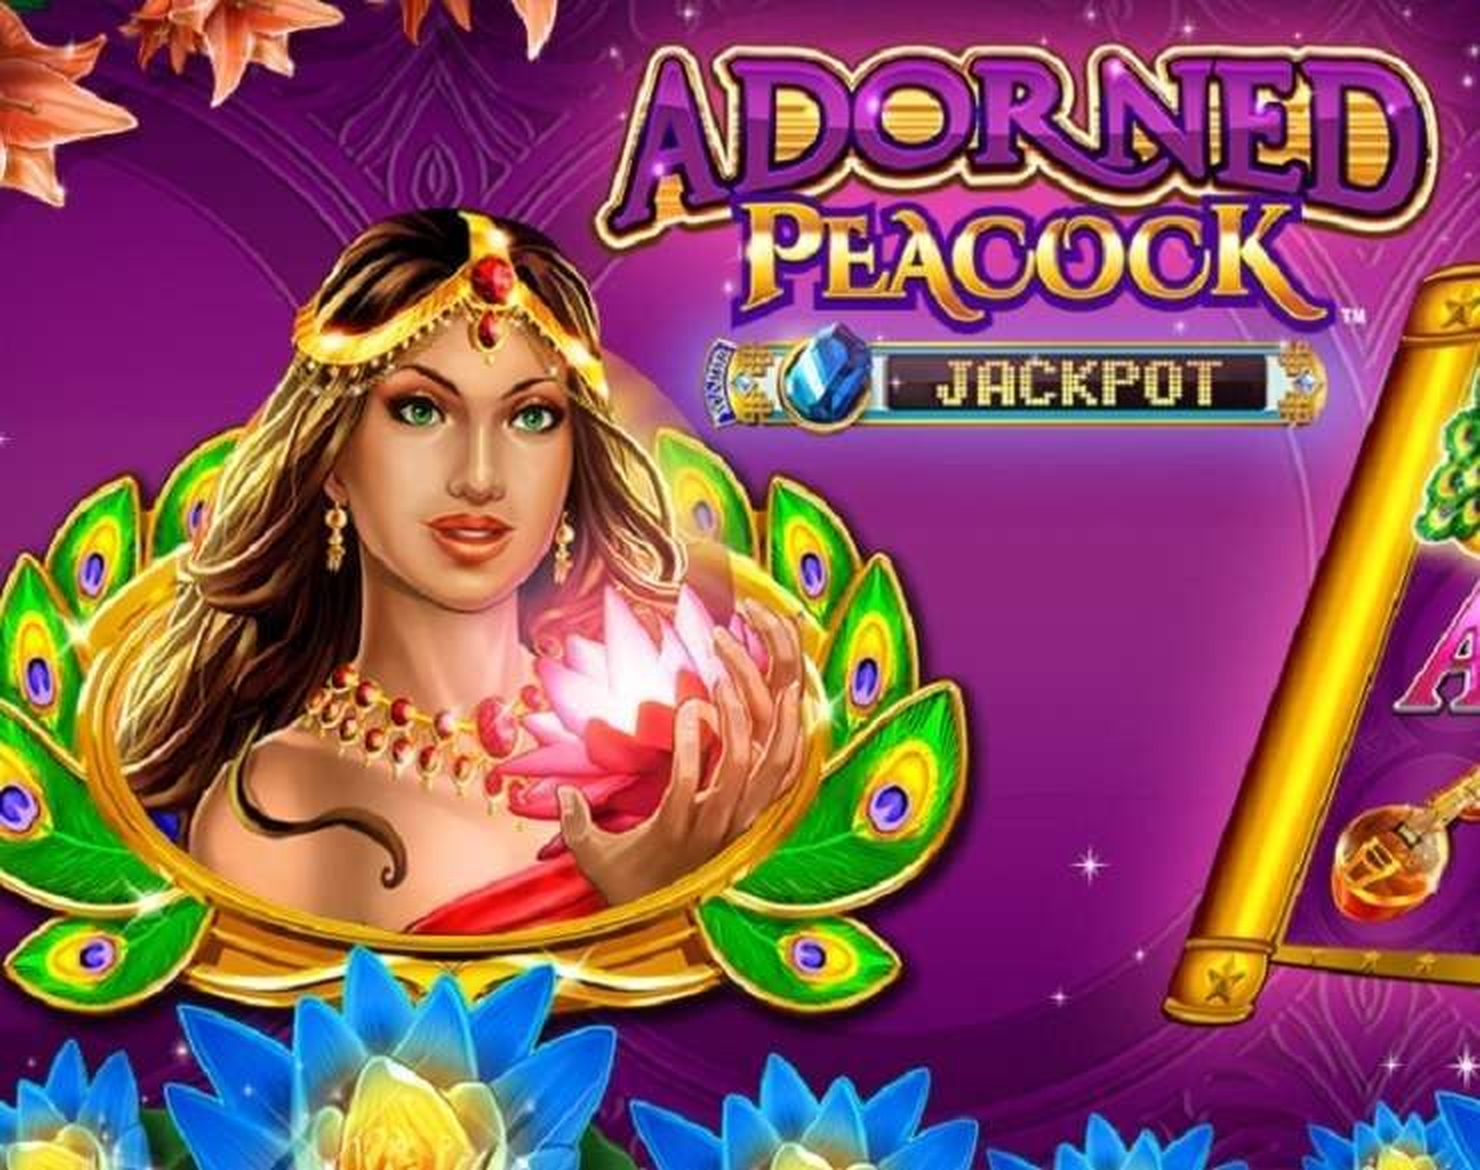 The Adorned Peacock Online Slot Demo Game by Konami Gaming